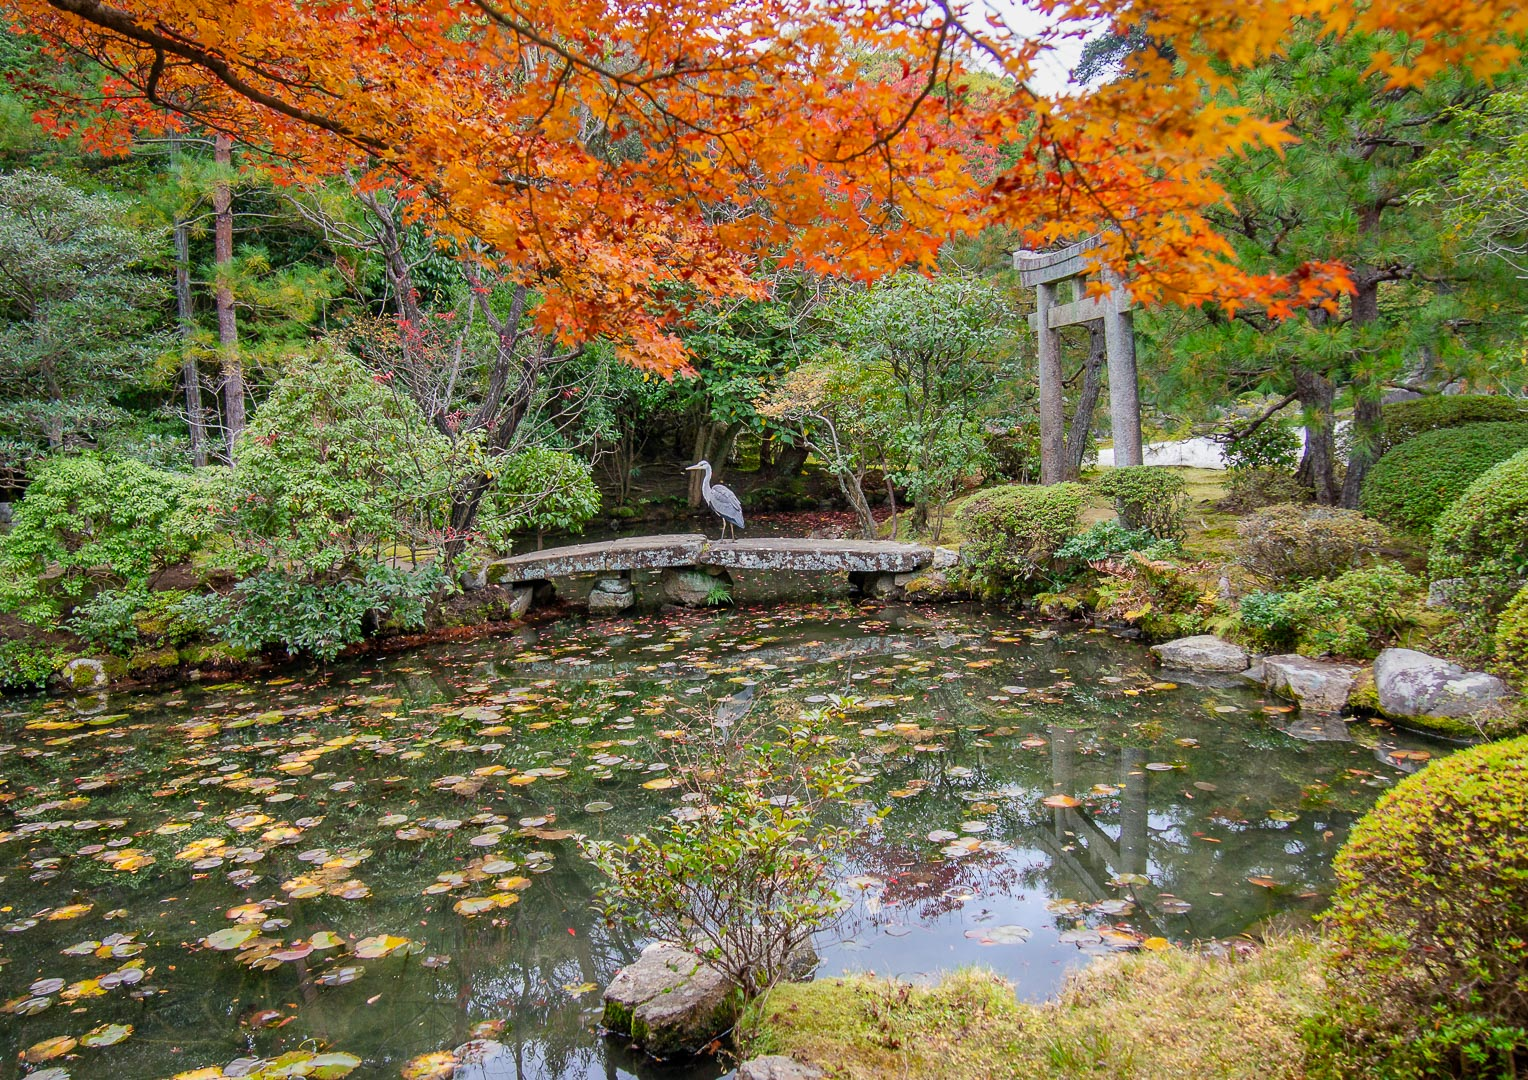 The Fall in Japan - 2011